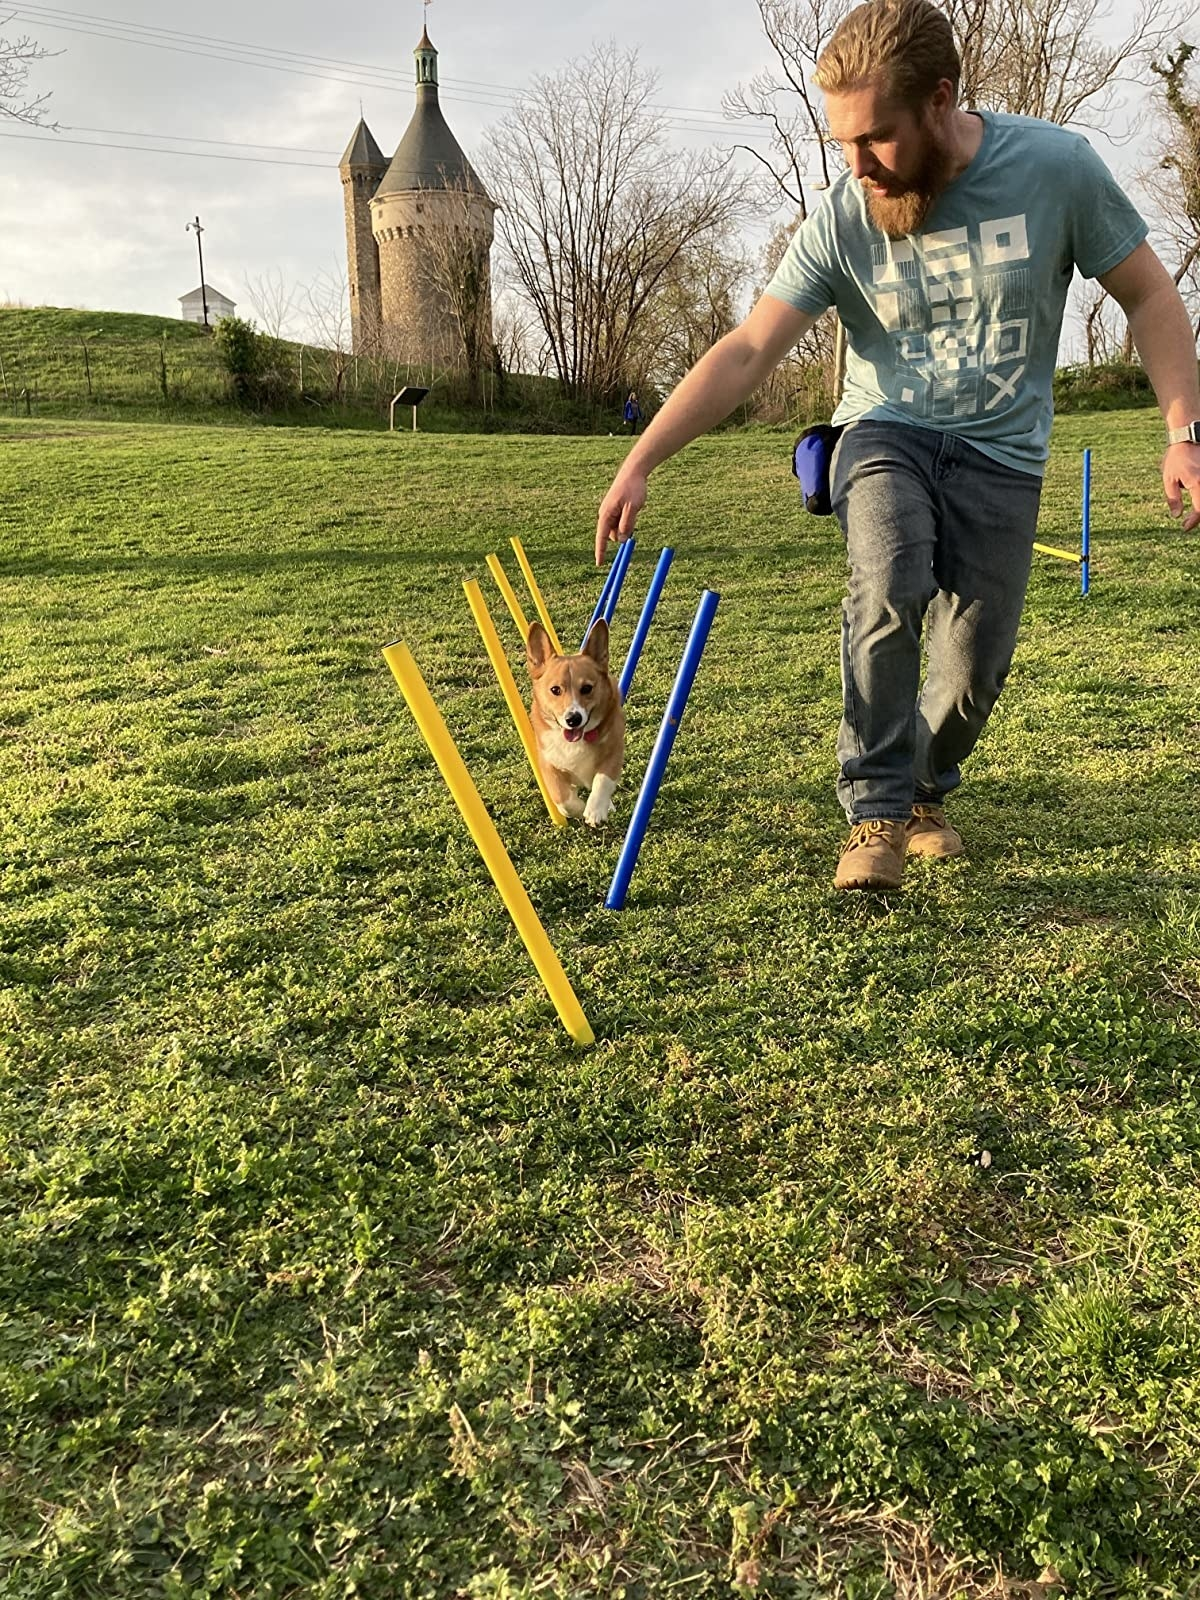 dog and owner playing in grass with obstacle course